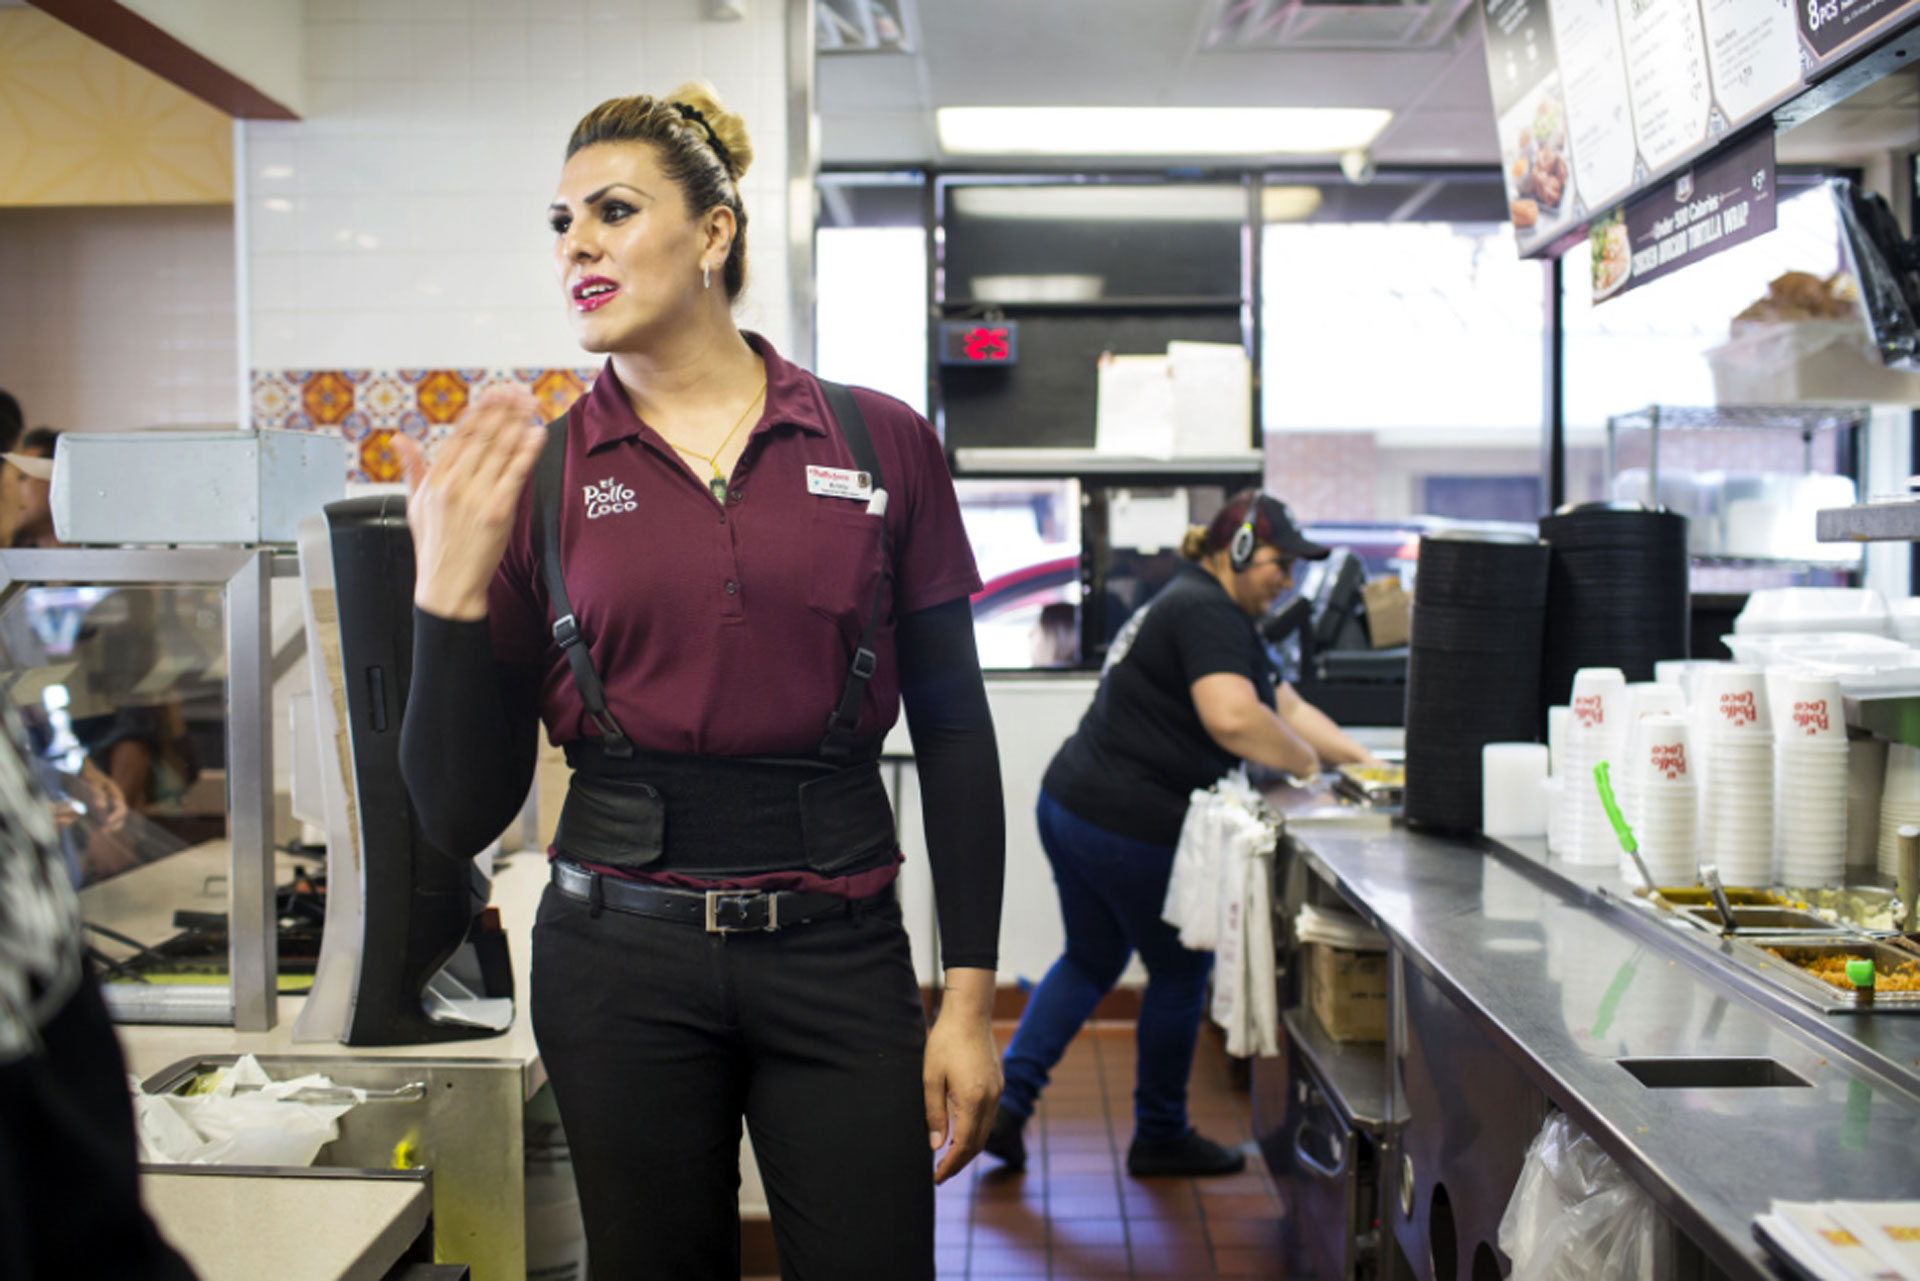 General Manager Kristy Ramirez helps a customer order at one of Michaela Mendelsohn's six El Pollo Loco franchises she owns in Southern California on July 14, 2016.